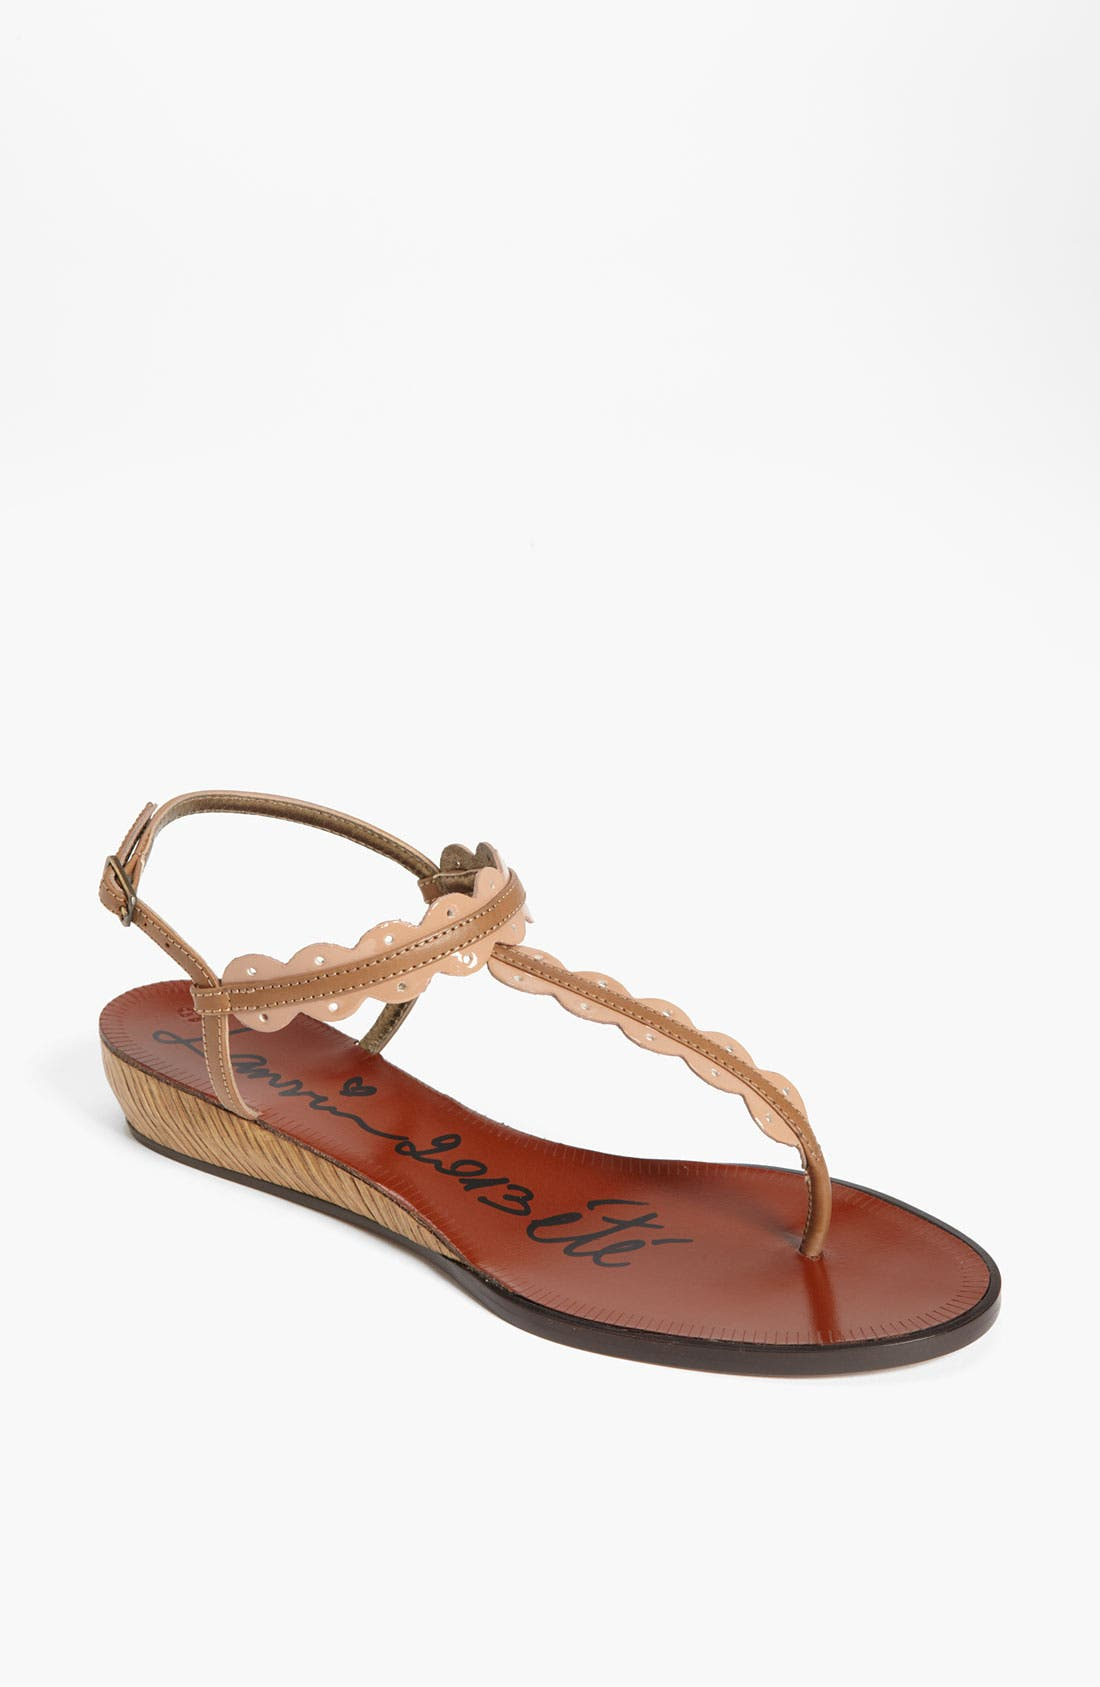 Main Image - Lanvin Mini Wedge Thong Sandal